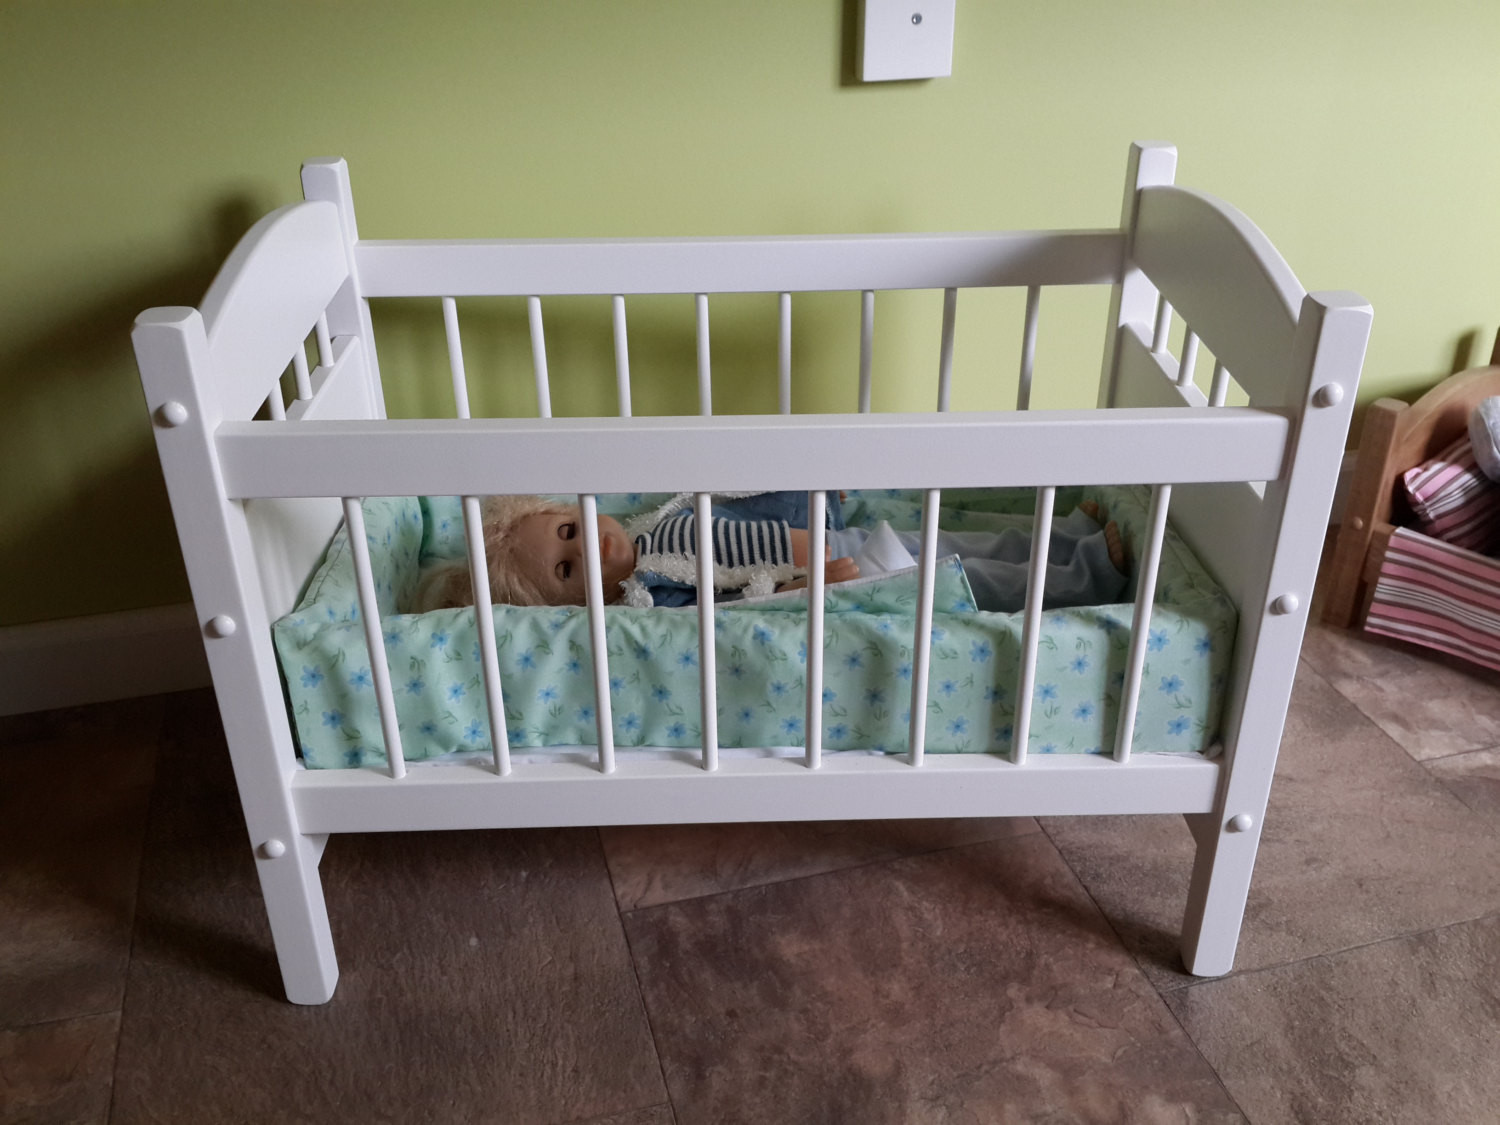 Best ideas about DIY Baby Doll Crib . Save or Pin Ideas DIY Baby Doll Cribs With Free Easy Plans — Kastav Now.